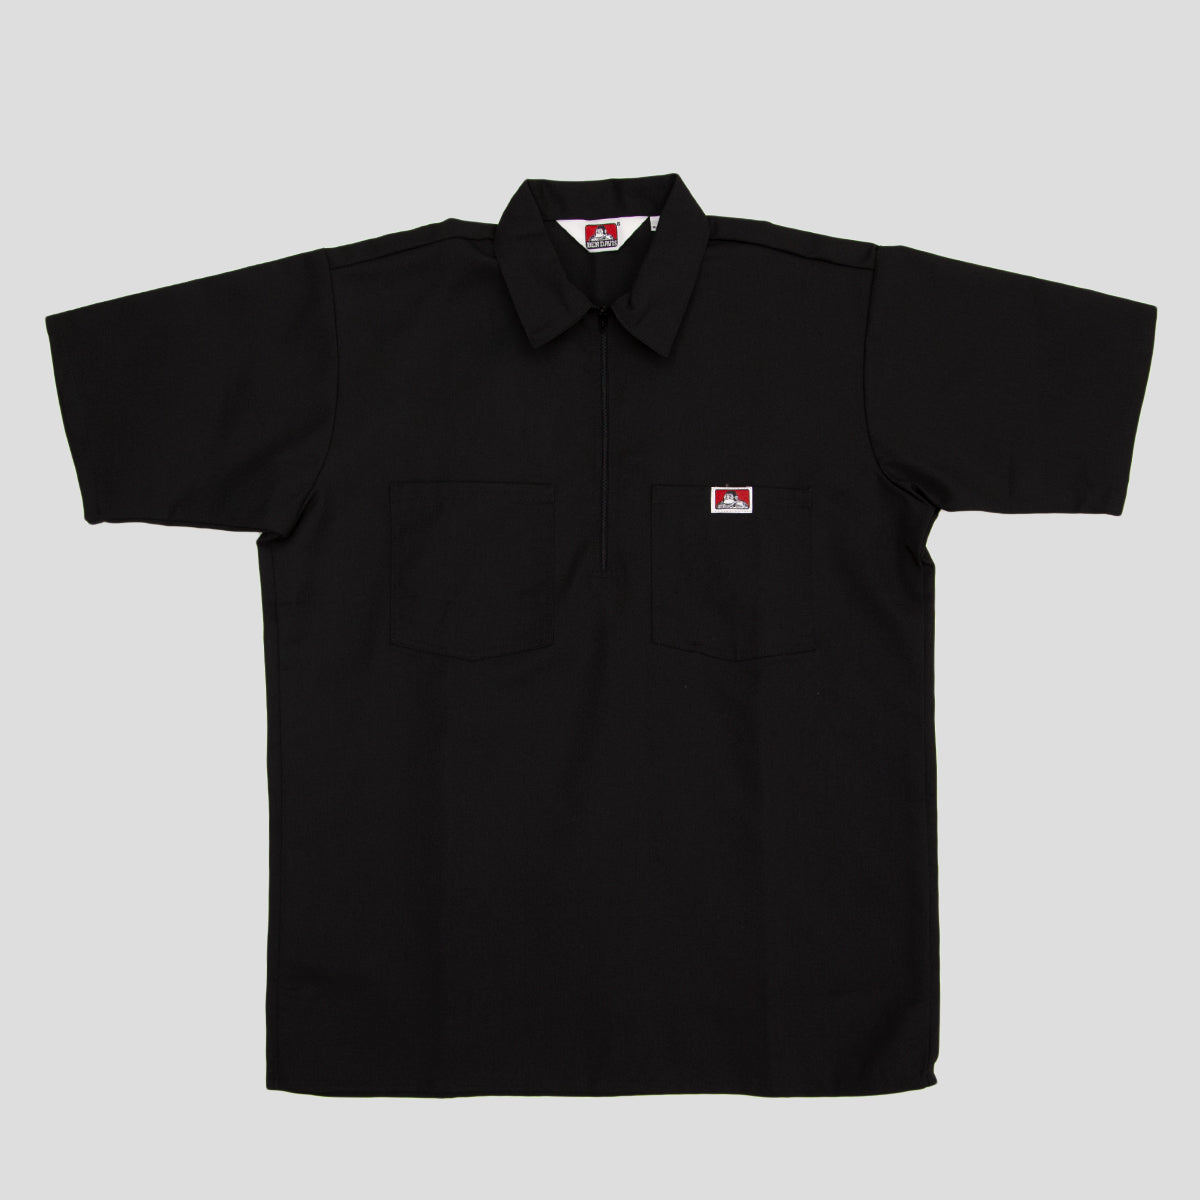 "BEN DAVIS ""SOLID"" SHIRT S/S 1/4 ZIP BLACK"